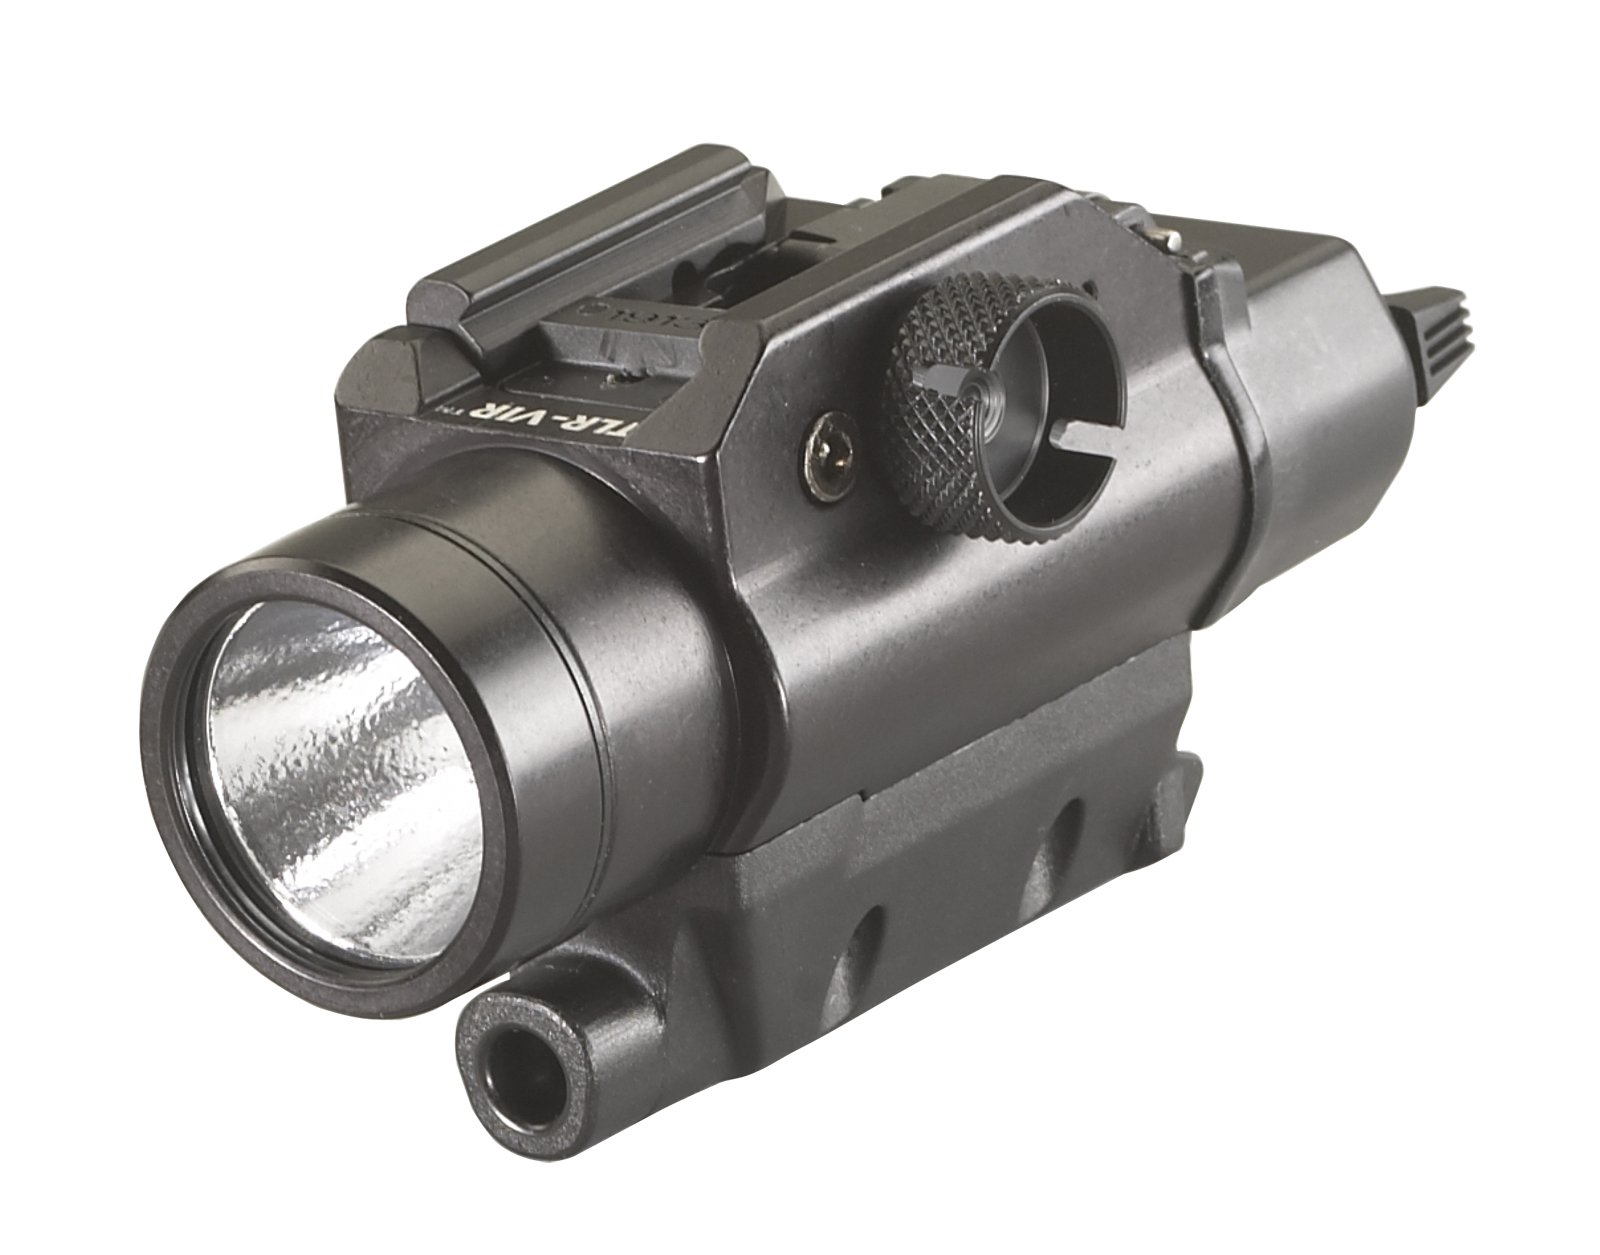 Streamlight 69180 TLR-VIR Visible LED Rail Mounted Flashlight with IR Illuminator